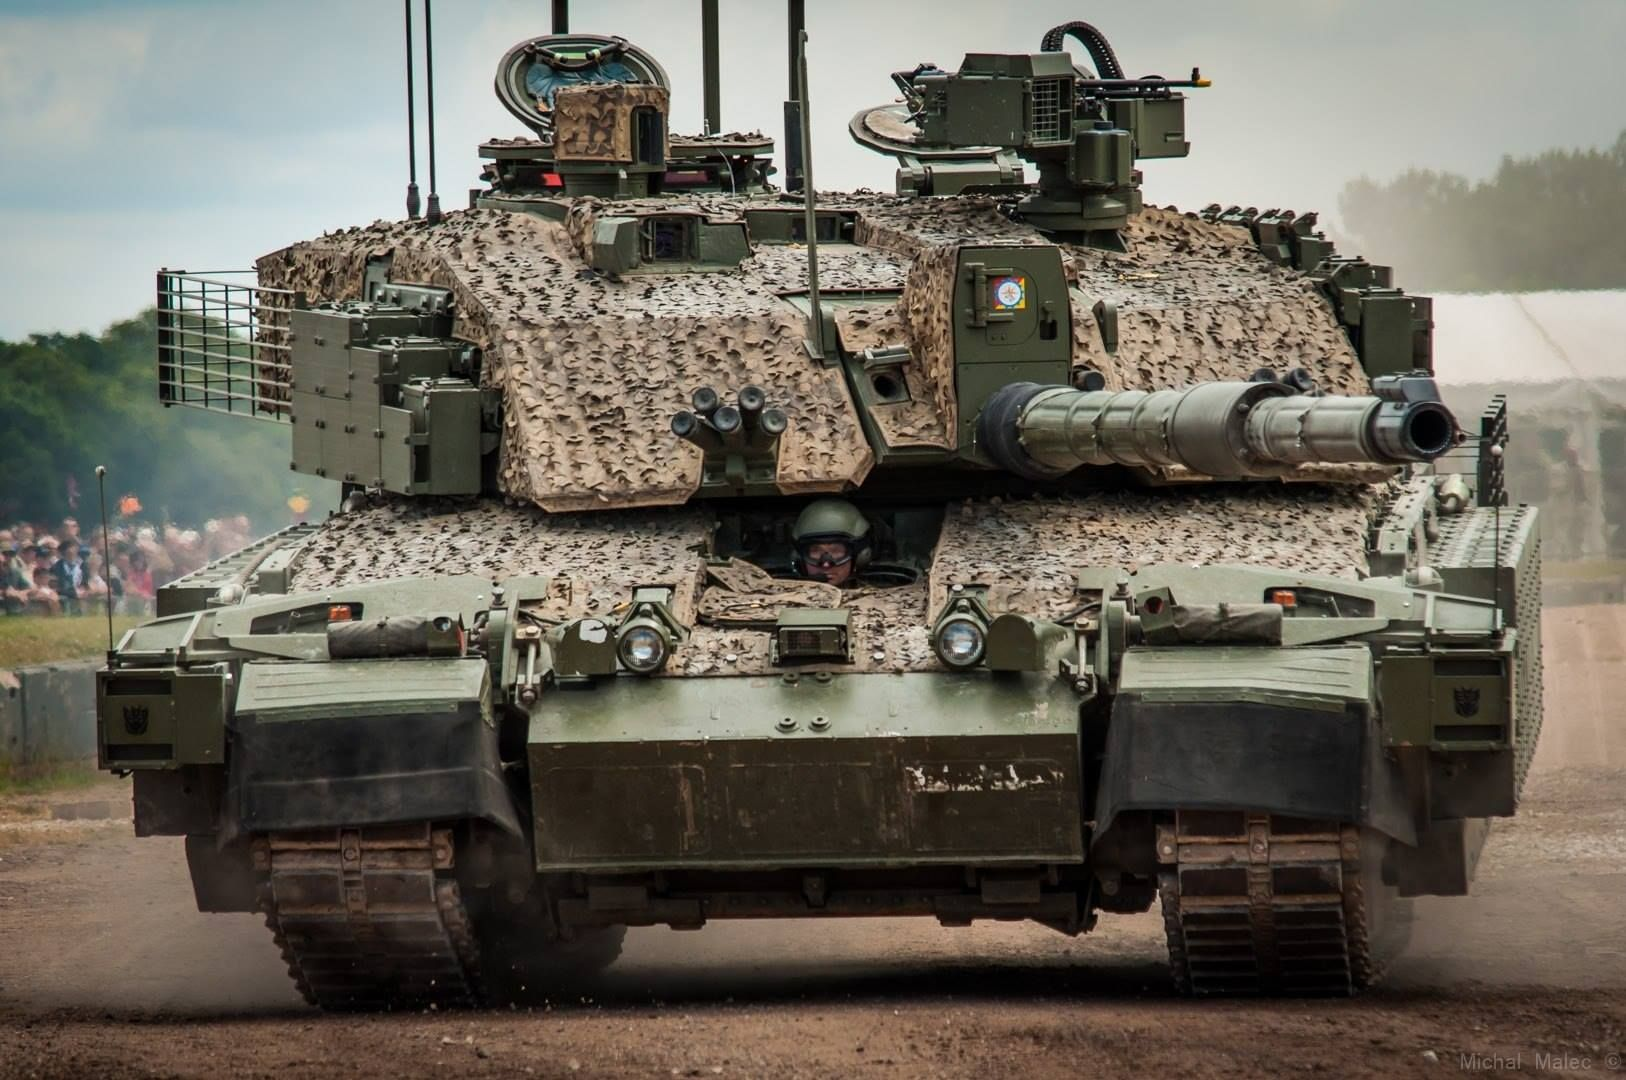 b2af71ab09c7 Challenger 2 TES The TES(H) or Threat Entry Standard is a system similar to  M1 Abrams TUSK system and is designed to better protect tanks in urban ...